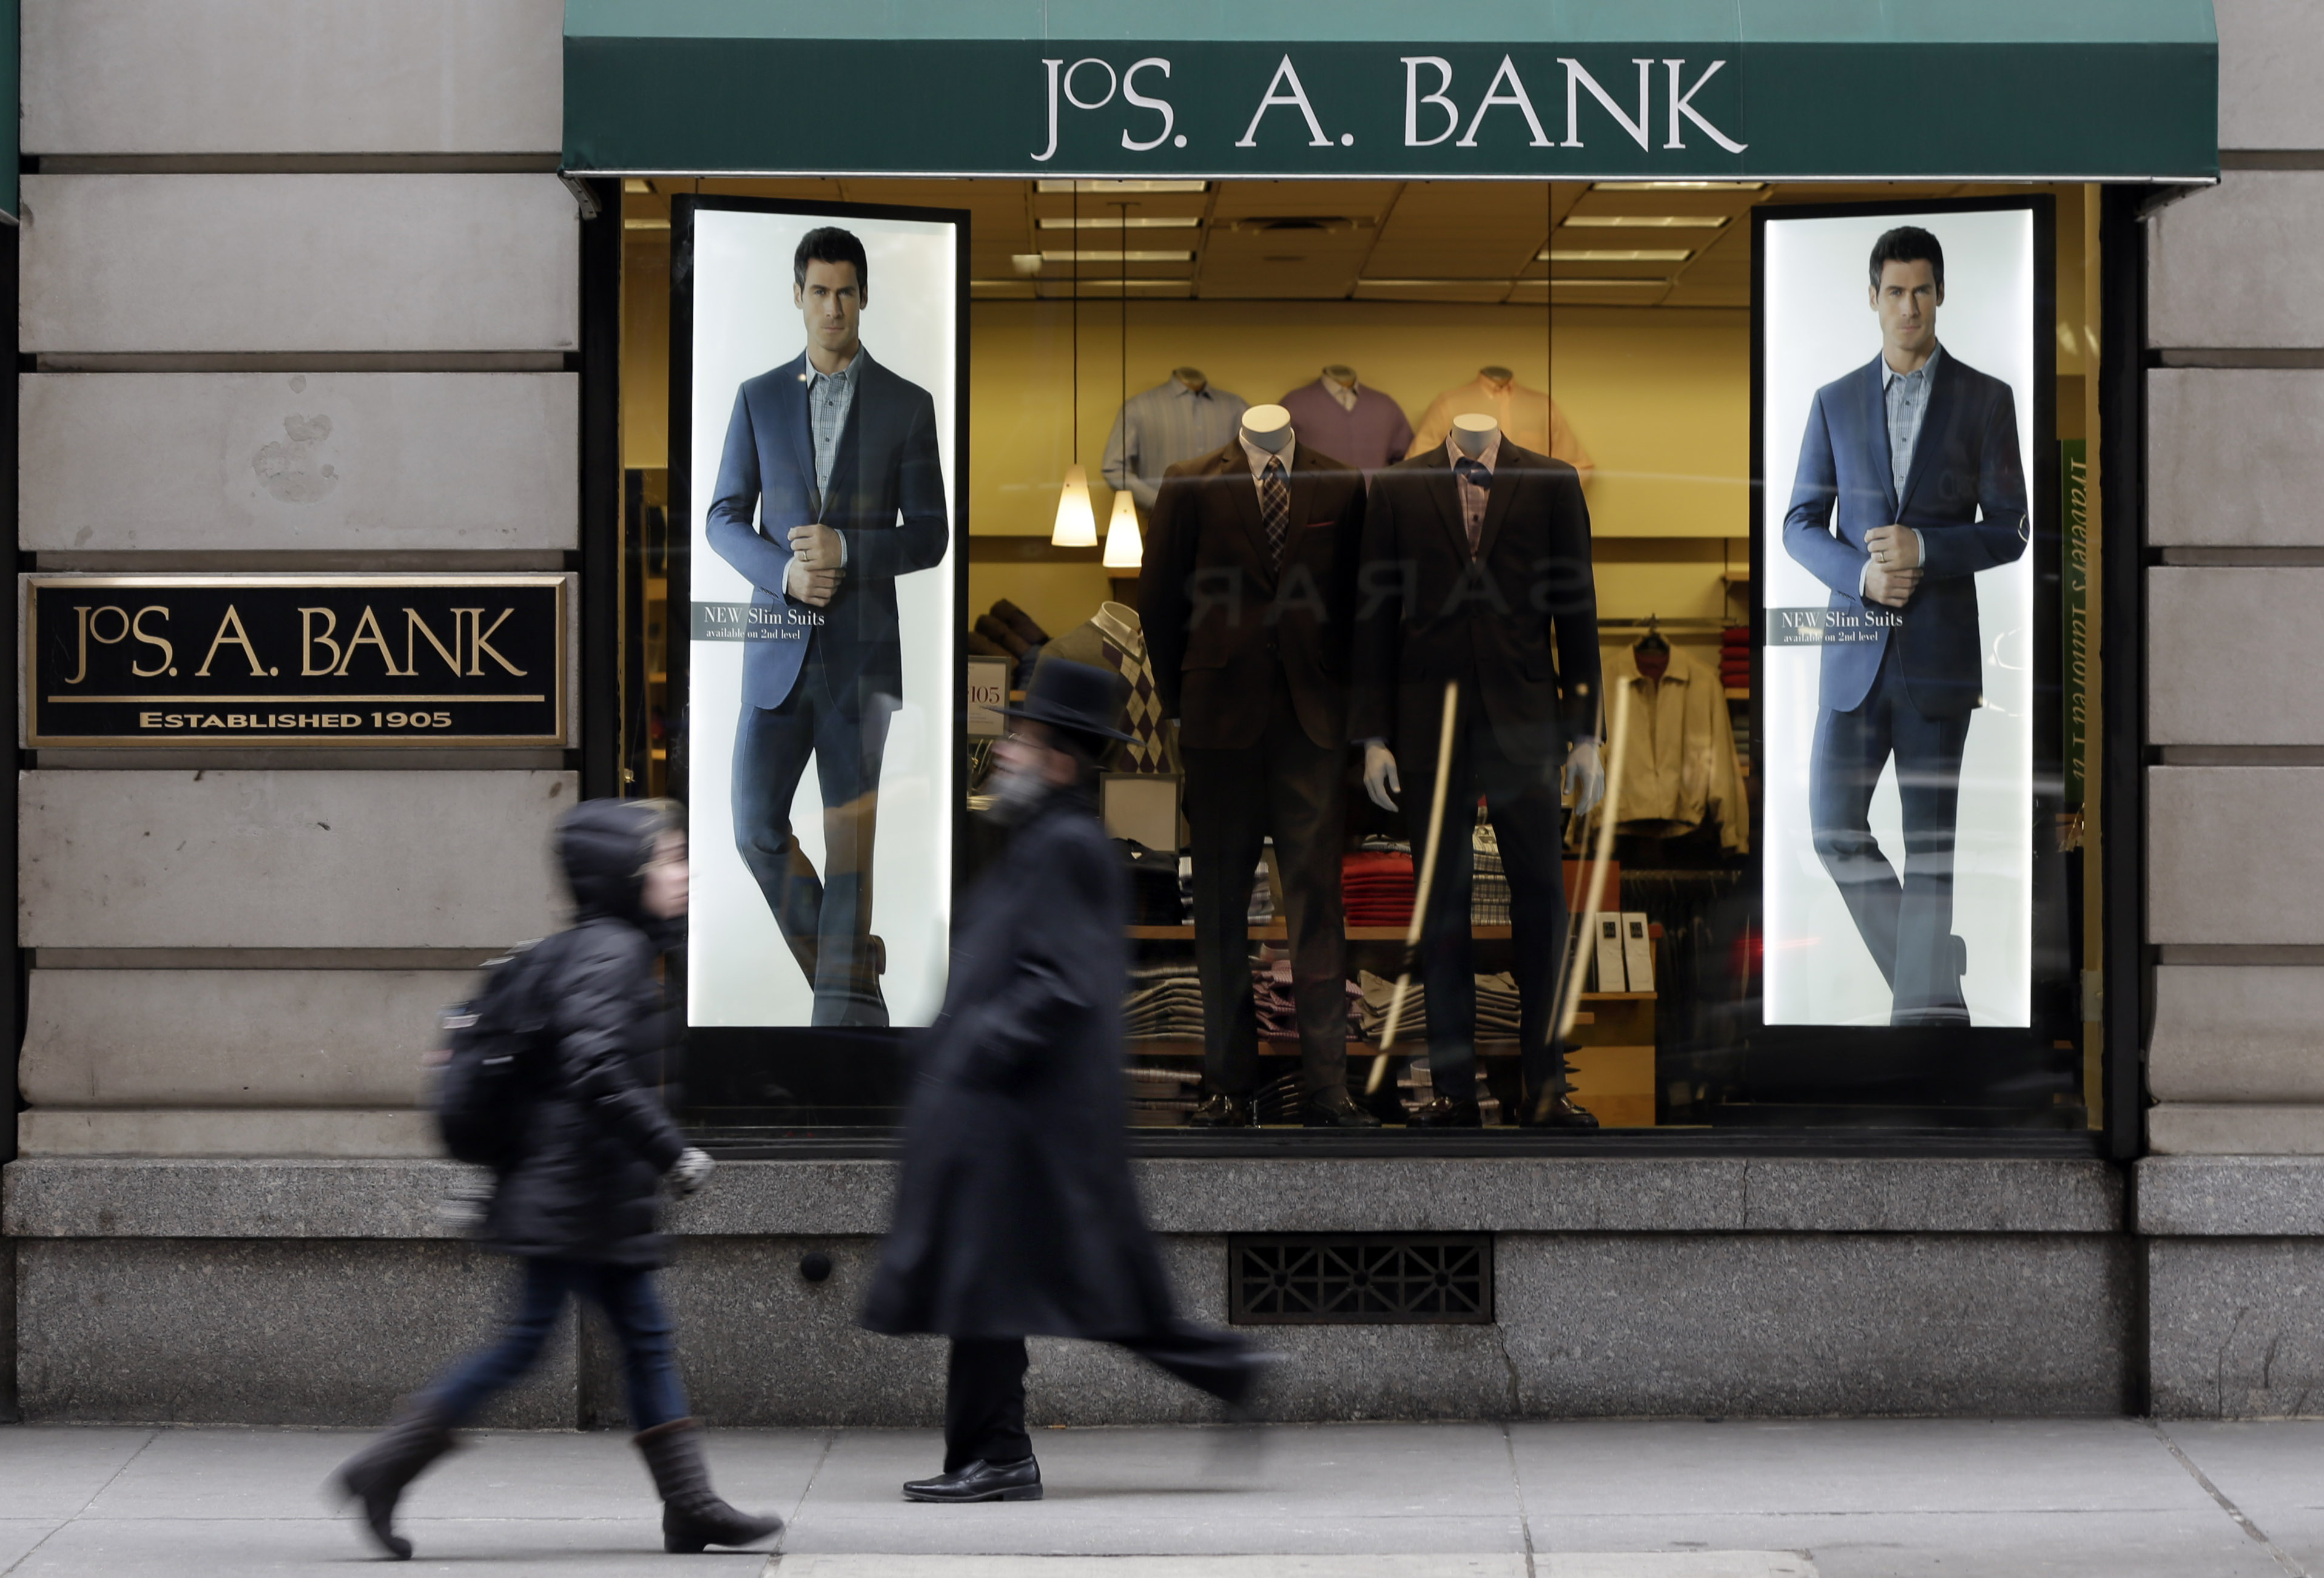 Men's Wearhouse Jos A Bank